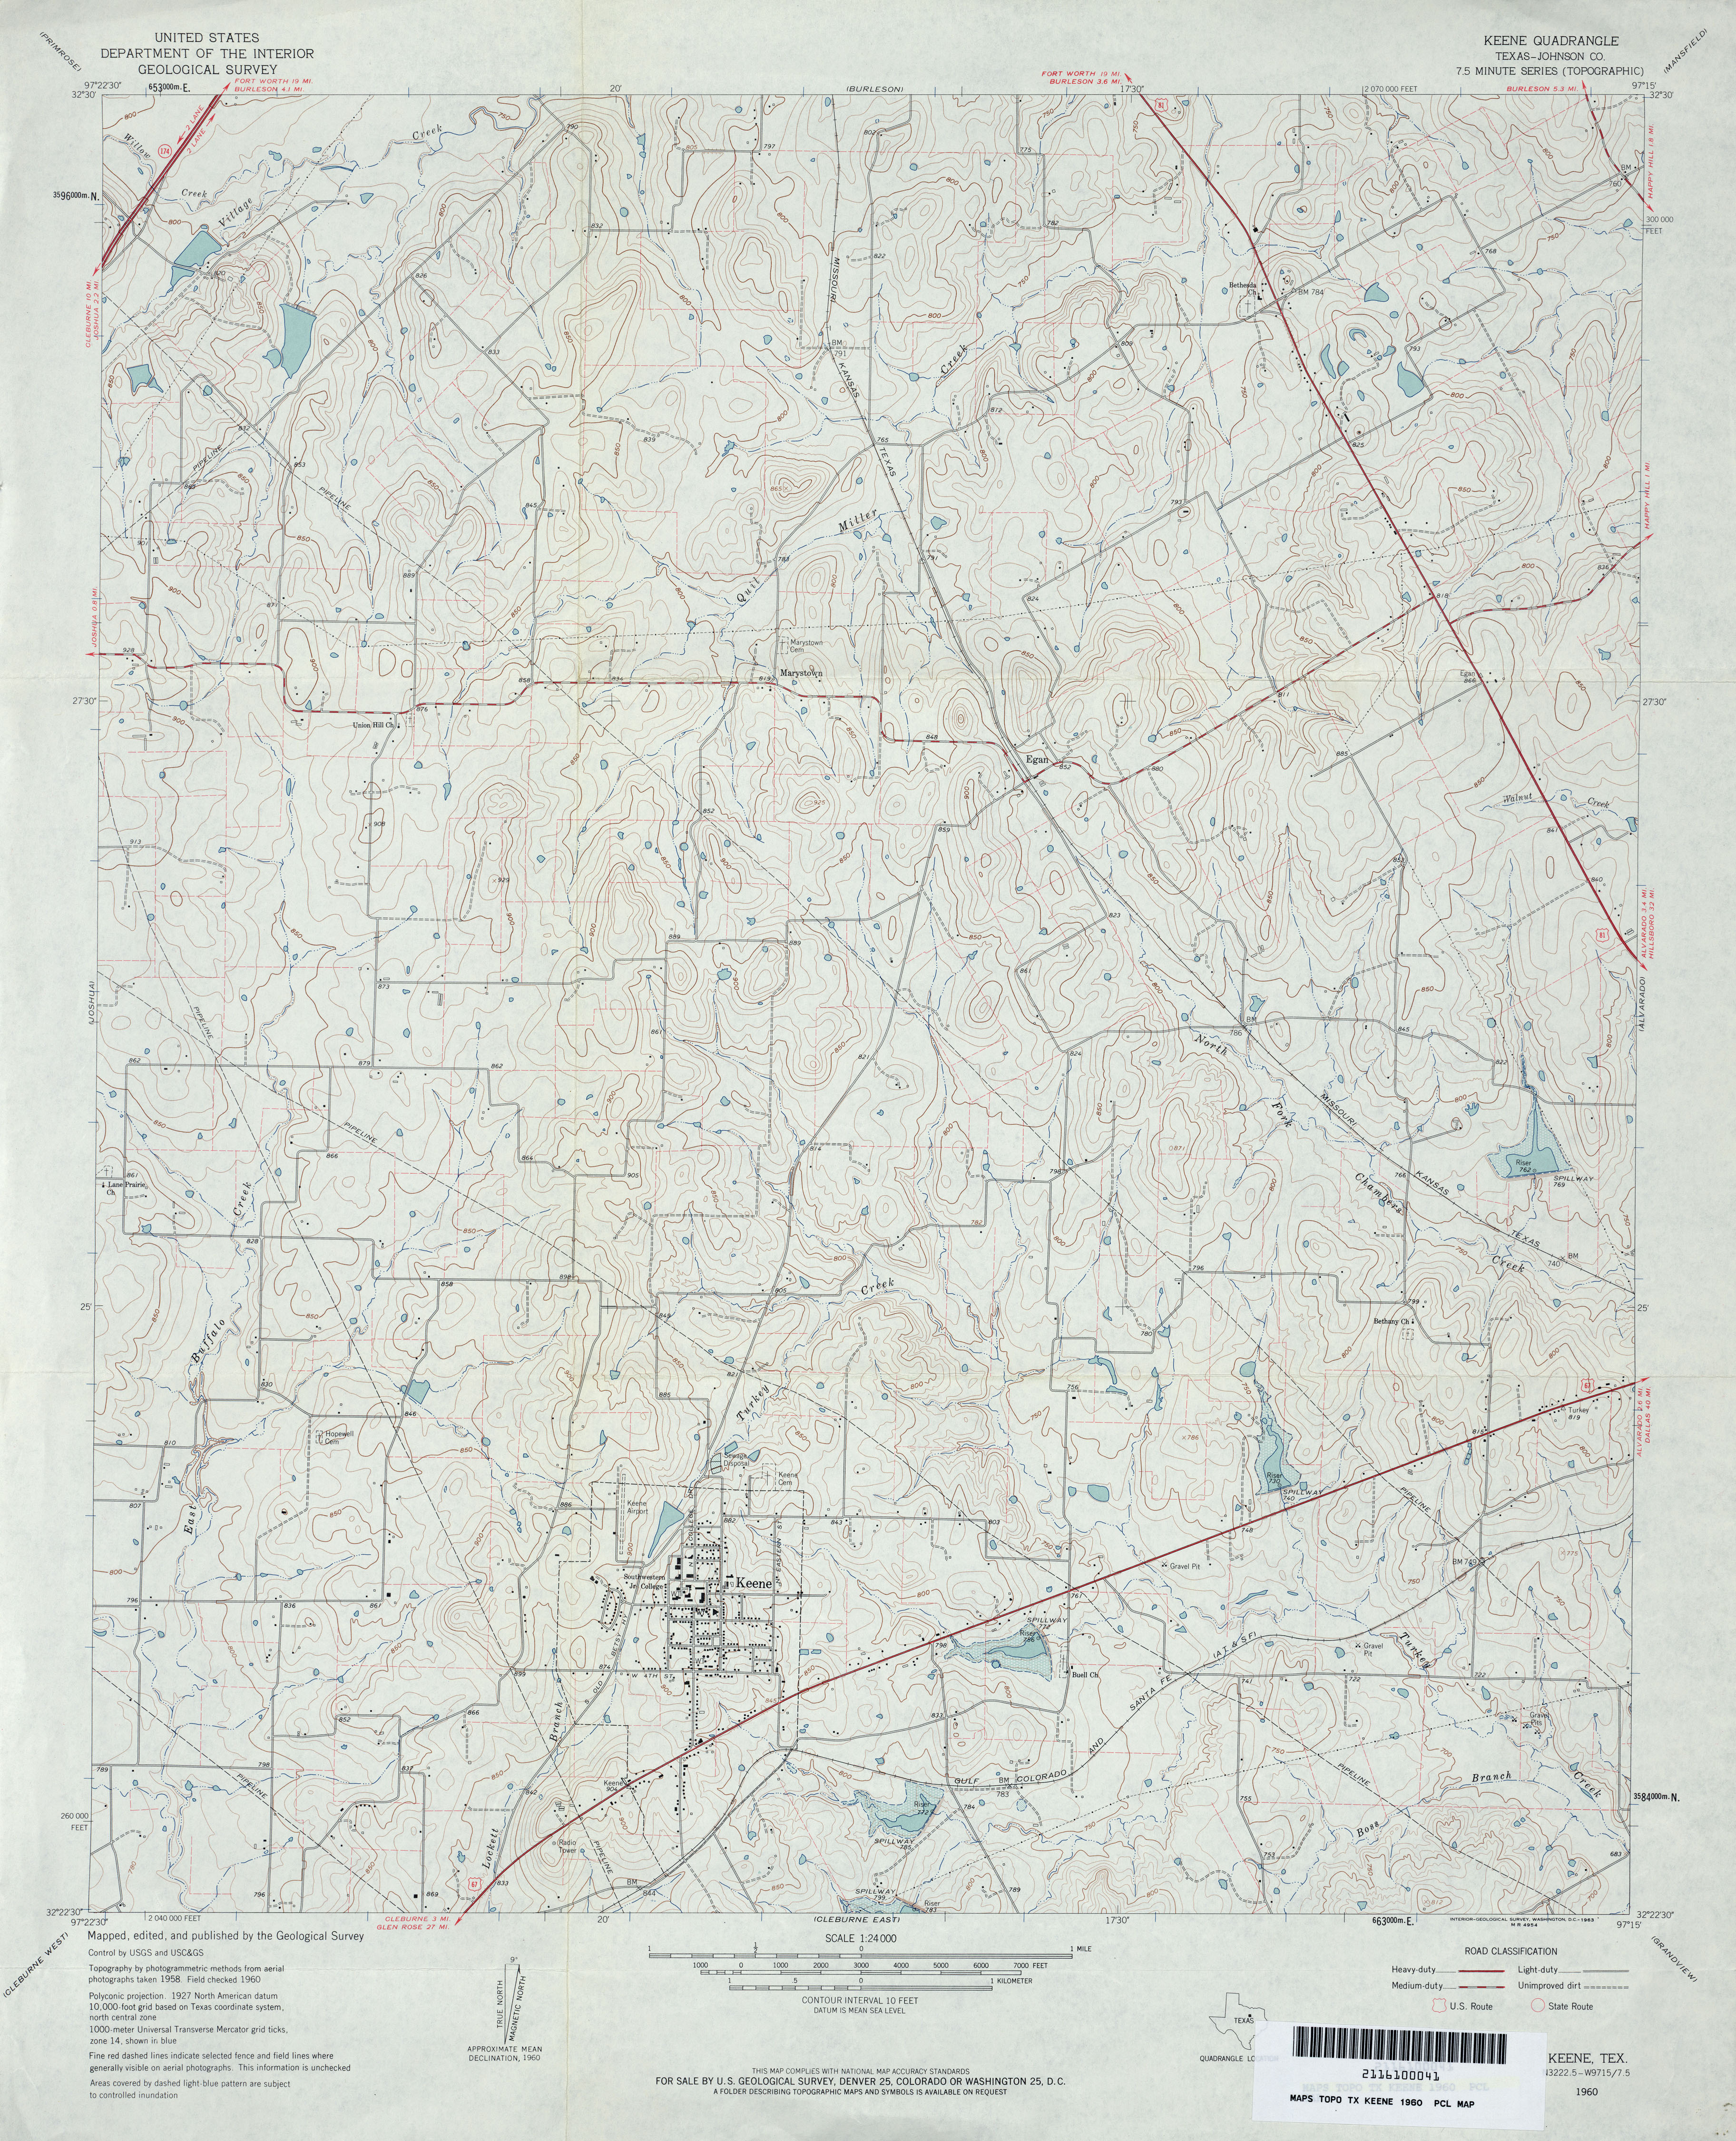 Texas Topographic Maps - Perry-Castañeda Map Collection - UT Liry on johnson city tn zip codes map, tarrant county college map, fort worth map, tarrant county property maps, tarrant county city map, collin co tx map, 752845zip code map, dallas county map, tarrant county courthouse, tarrant county interactive map, tarrant county mapsco grid, albany oregon zip codes map, tarrant county elevation map, tarrant county town map, denton county line map, tarrant county arrest search, tarrant county borders, tarrant county county map, city of weatherford texas map, el paso with zip codes map,